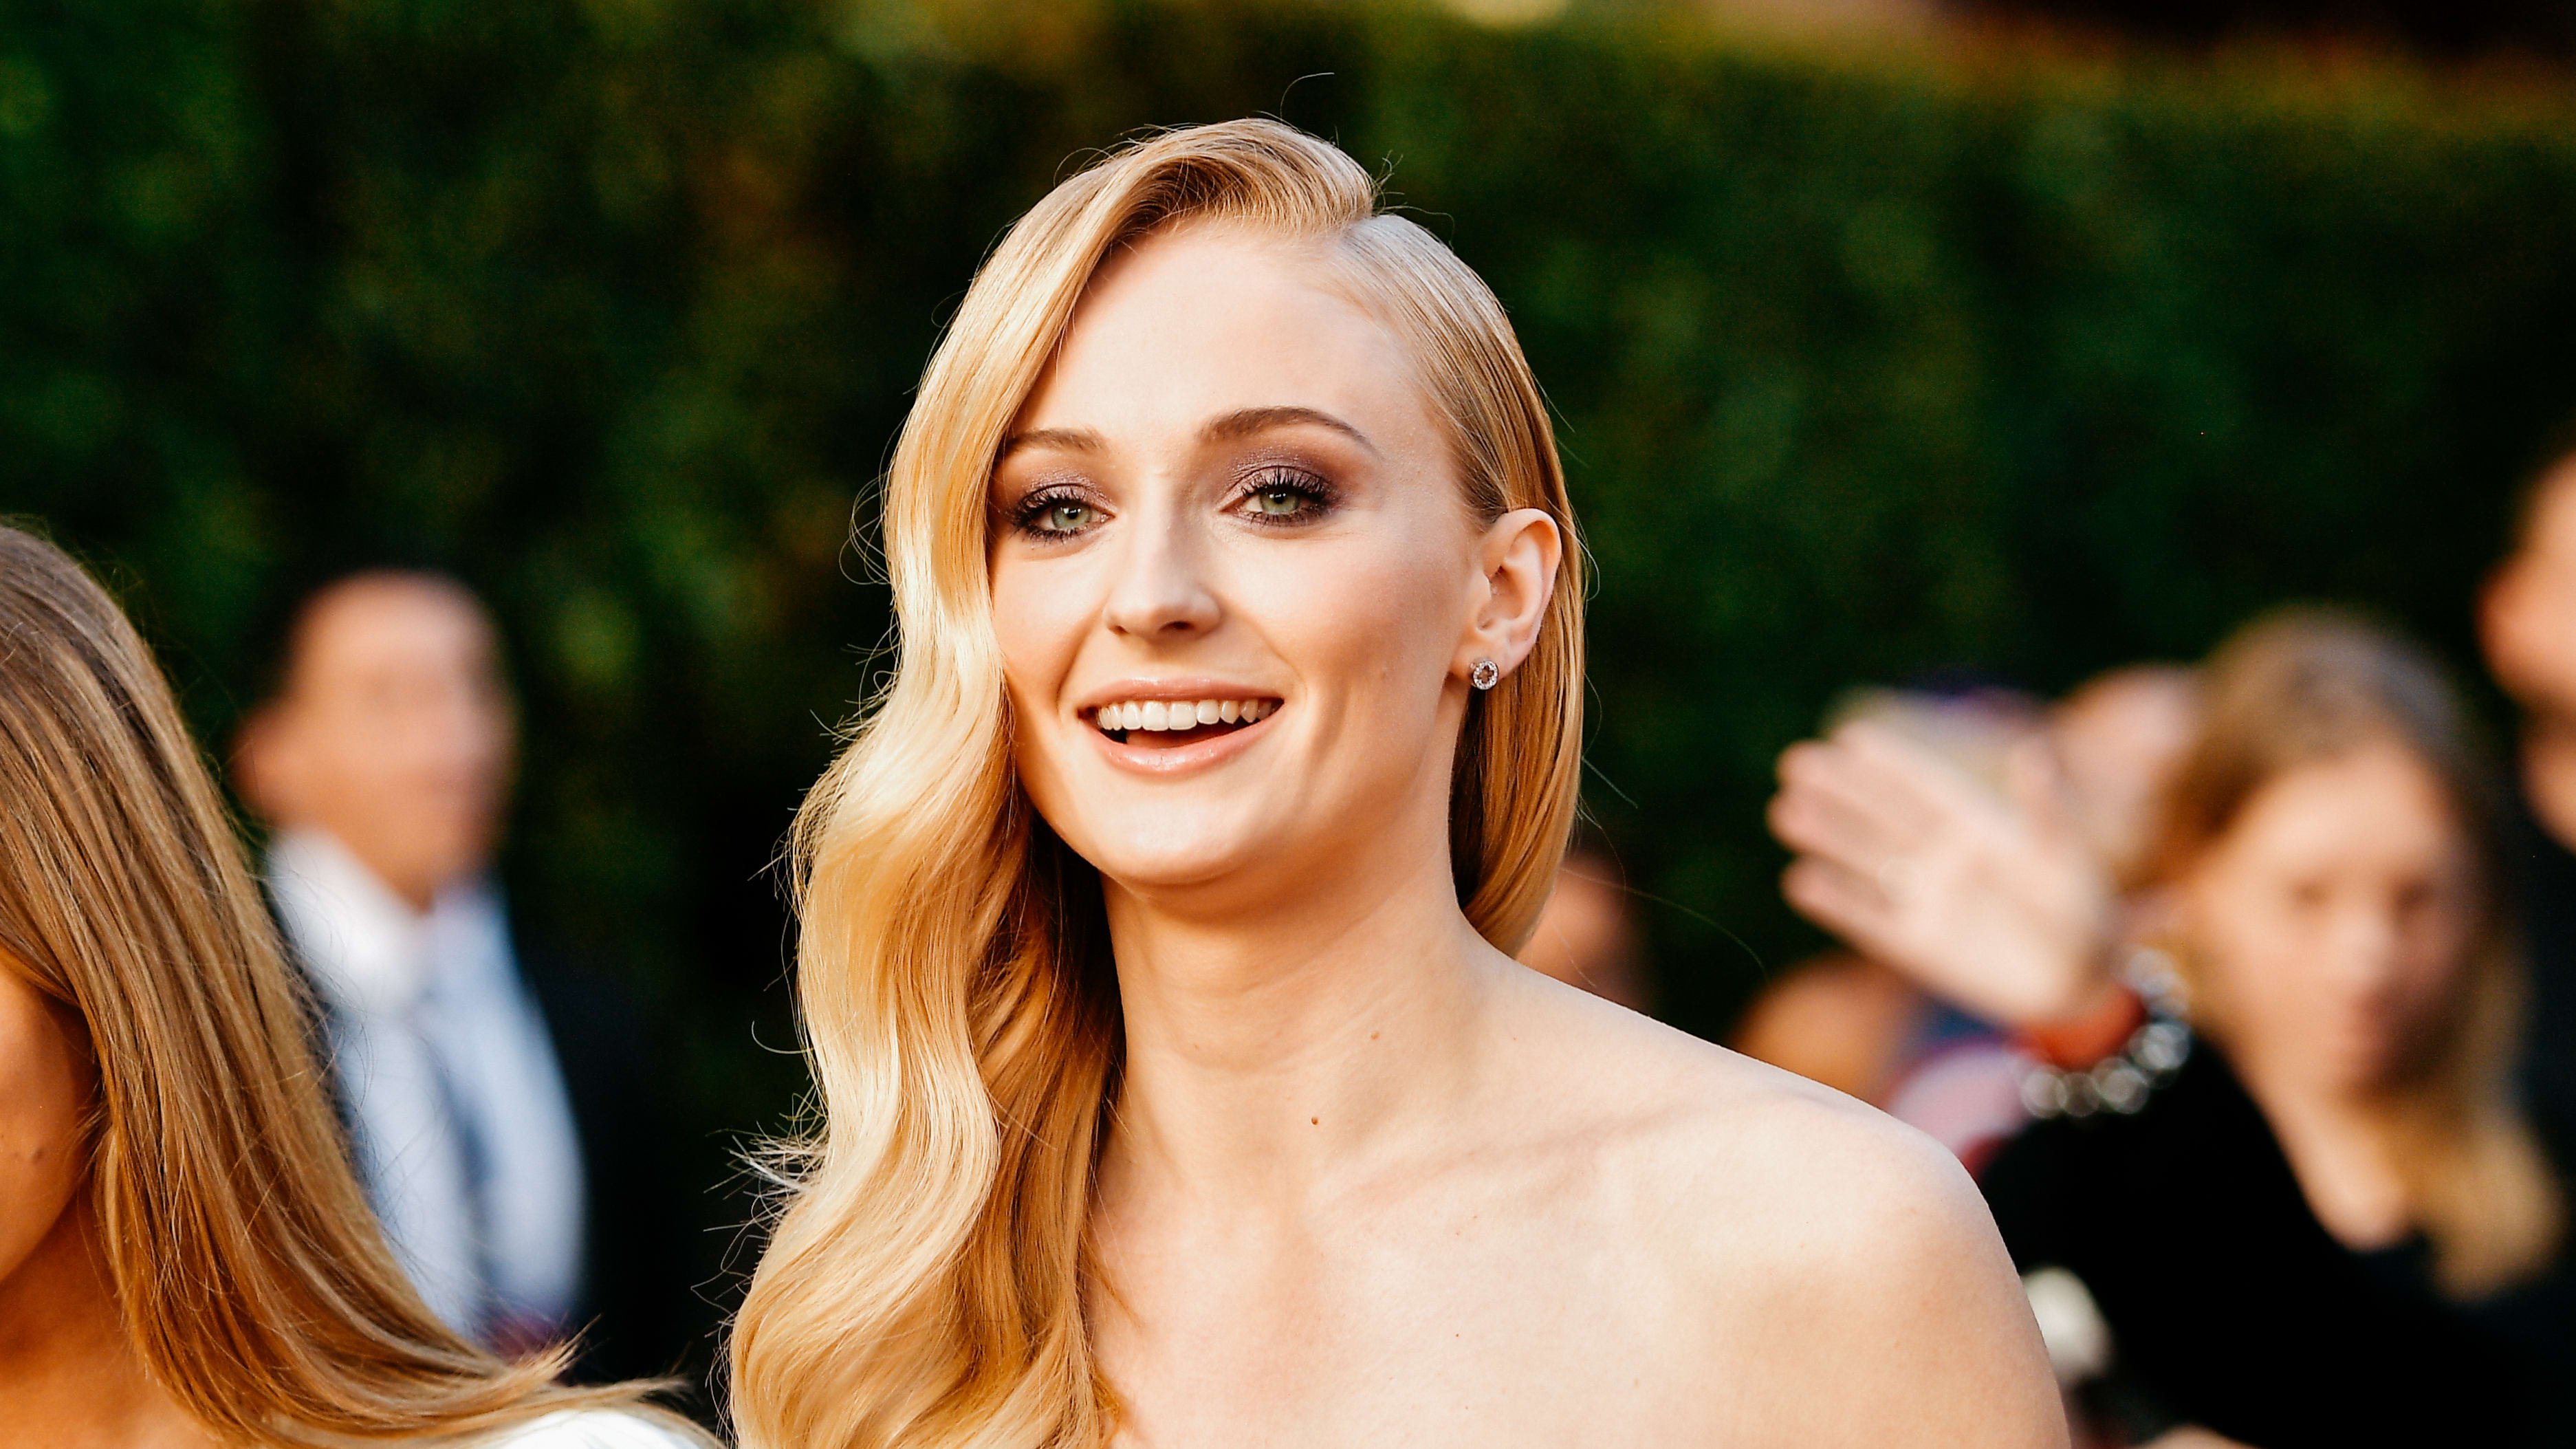 "HOLLYWOOD, CALIFORNIA - JUNE 04: (EDITORS NOTE: Image has been processed using digital filters) Sophie Turner attends the premiere of 20th Century Fox's ""Dark Phoenix"" at TCL Chinese Theatre on June 04, 2019 in Hollywood, California. (Photo by Matt Winkelmeyer/Getty Images)"